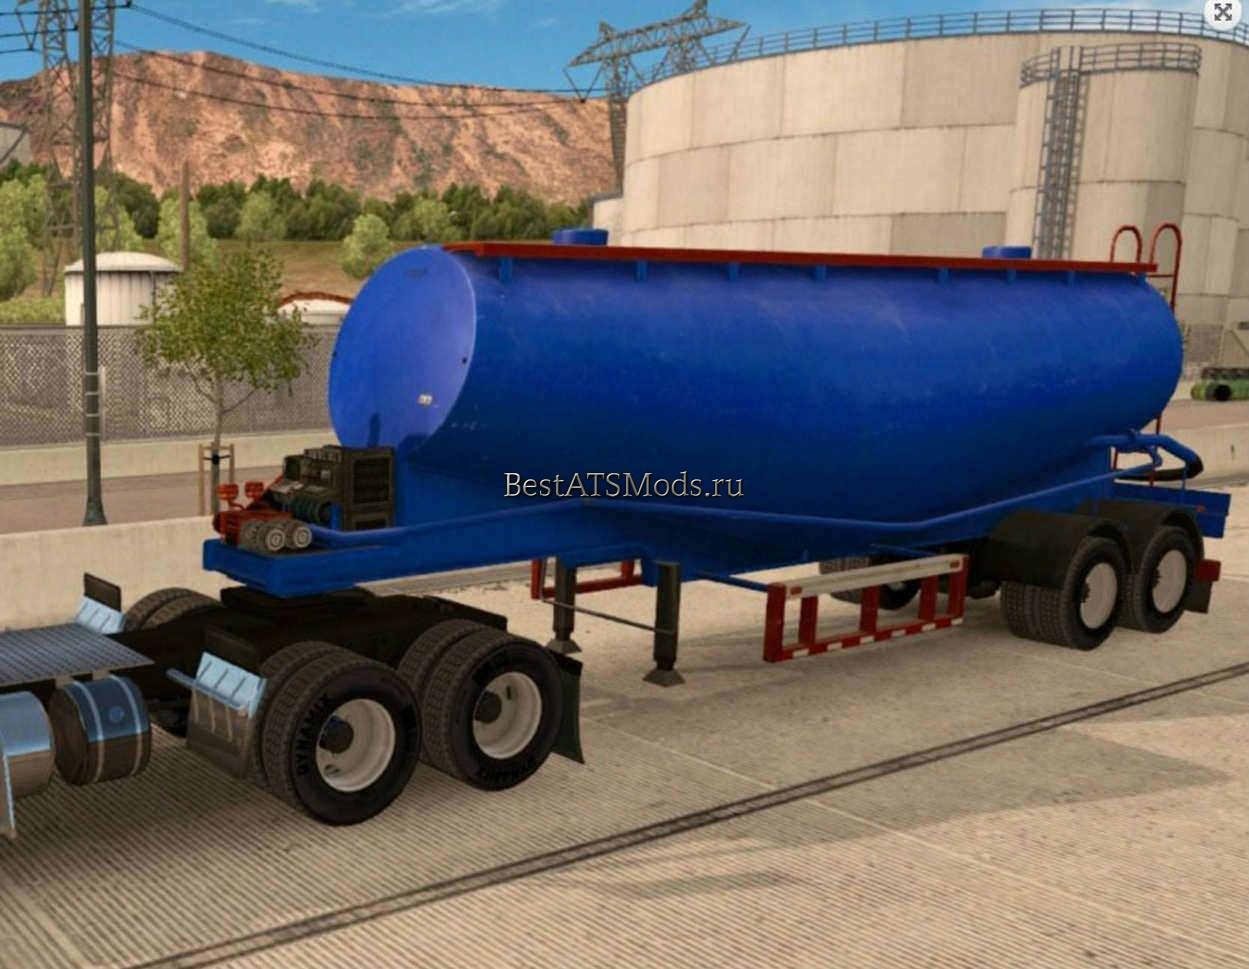 rsz_Мод_прицеп-цементовоз_blue_cement_trailer_mod_american_truck_simulator